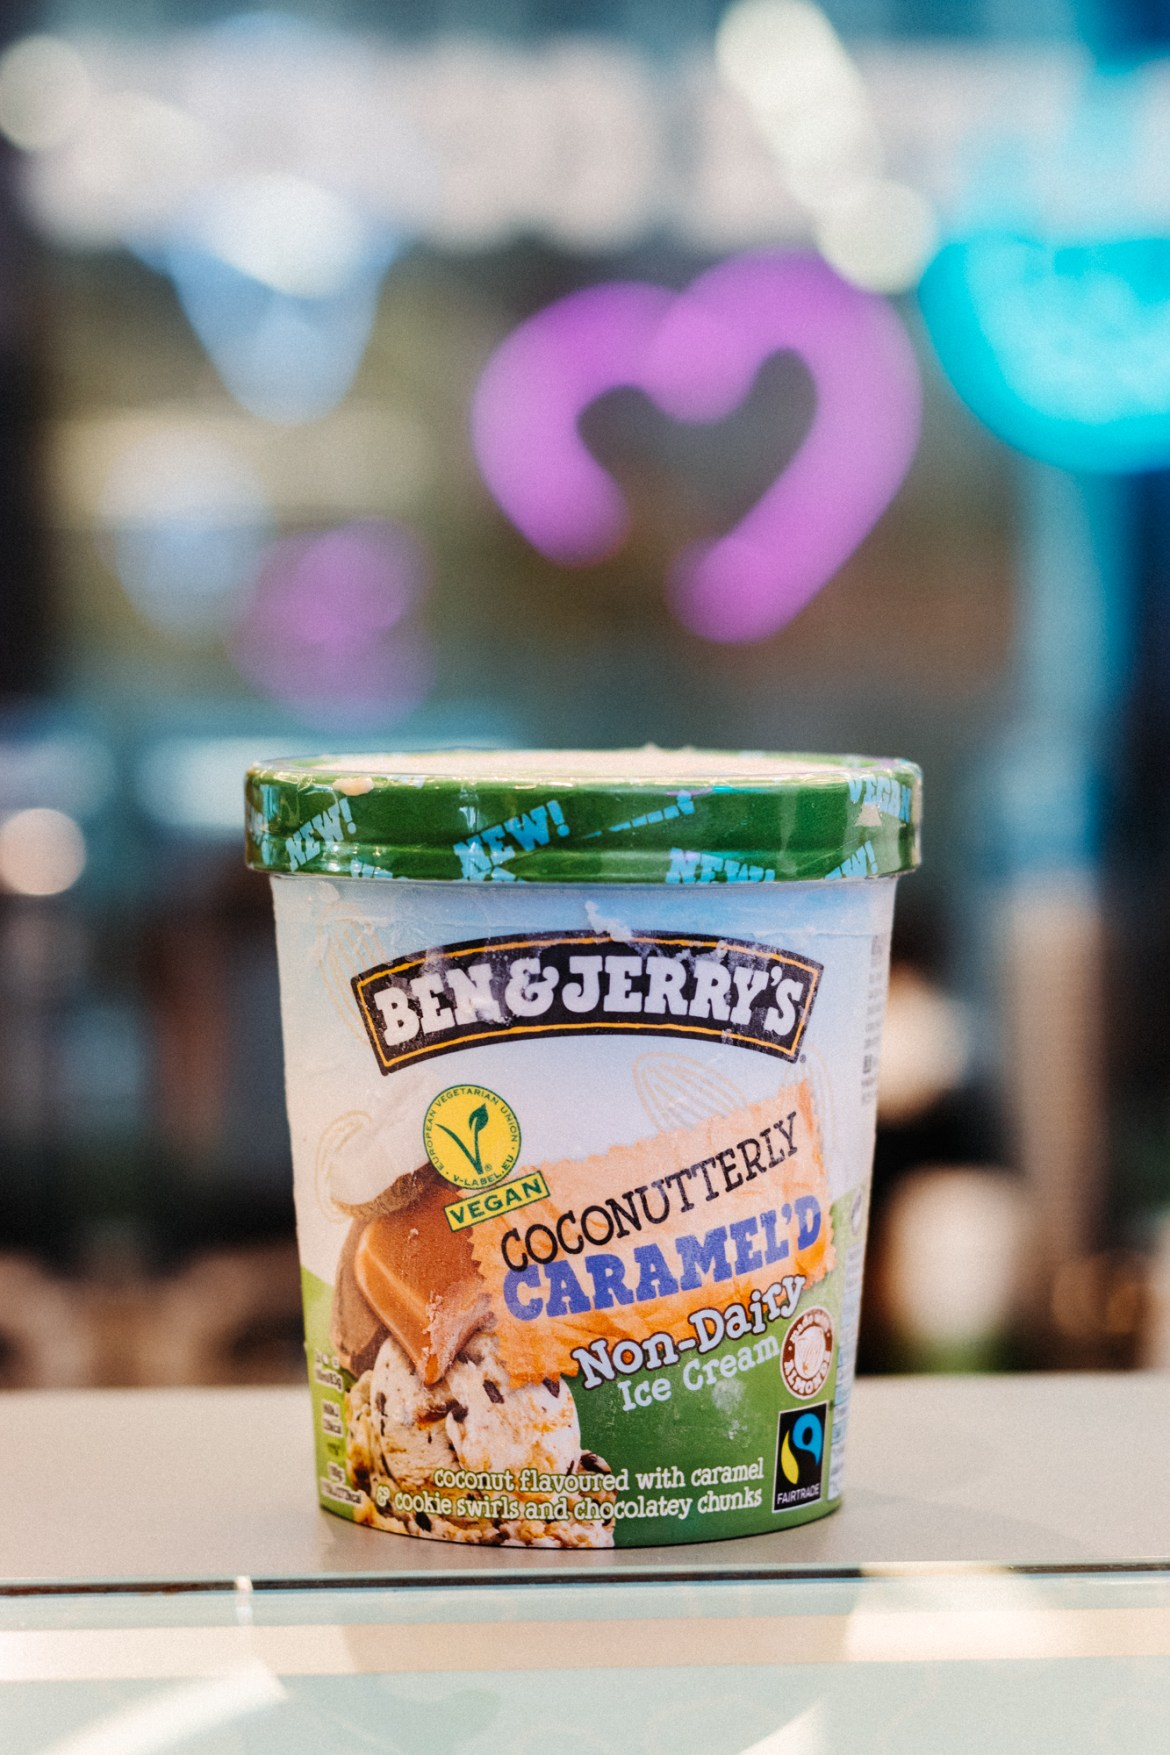 UK's New Non-Dairy Ben & Jerry's flavour: Coconutterly Caramel'd!